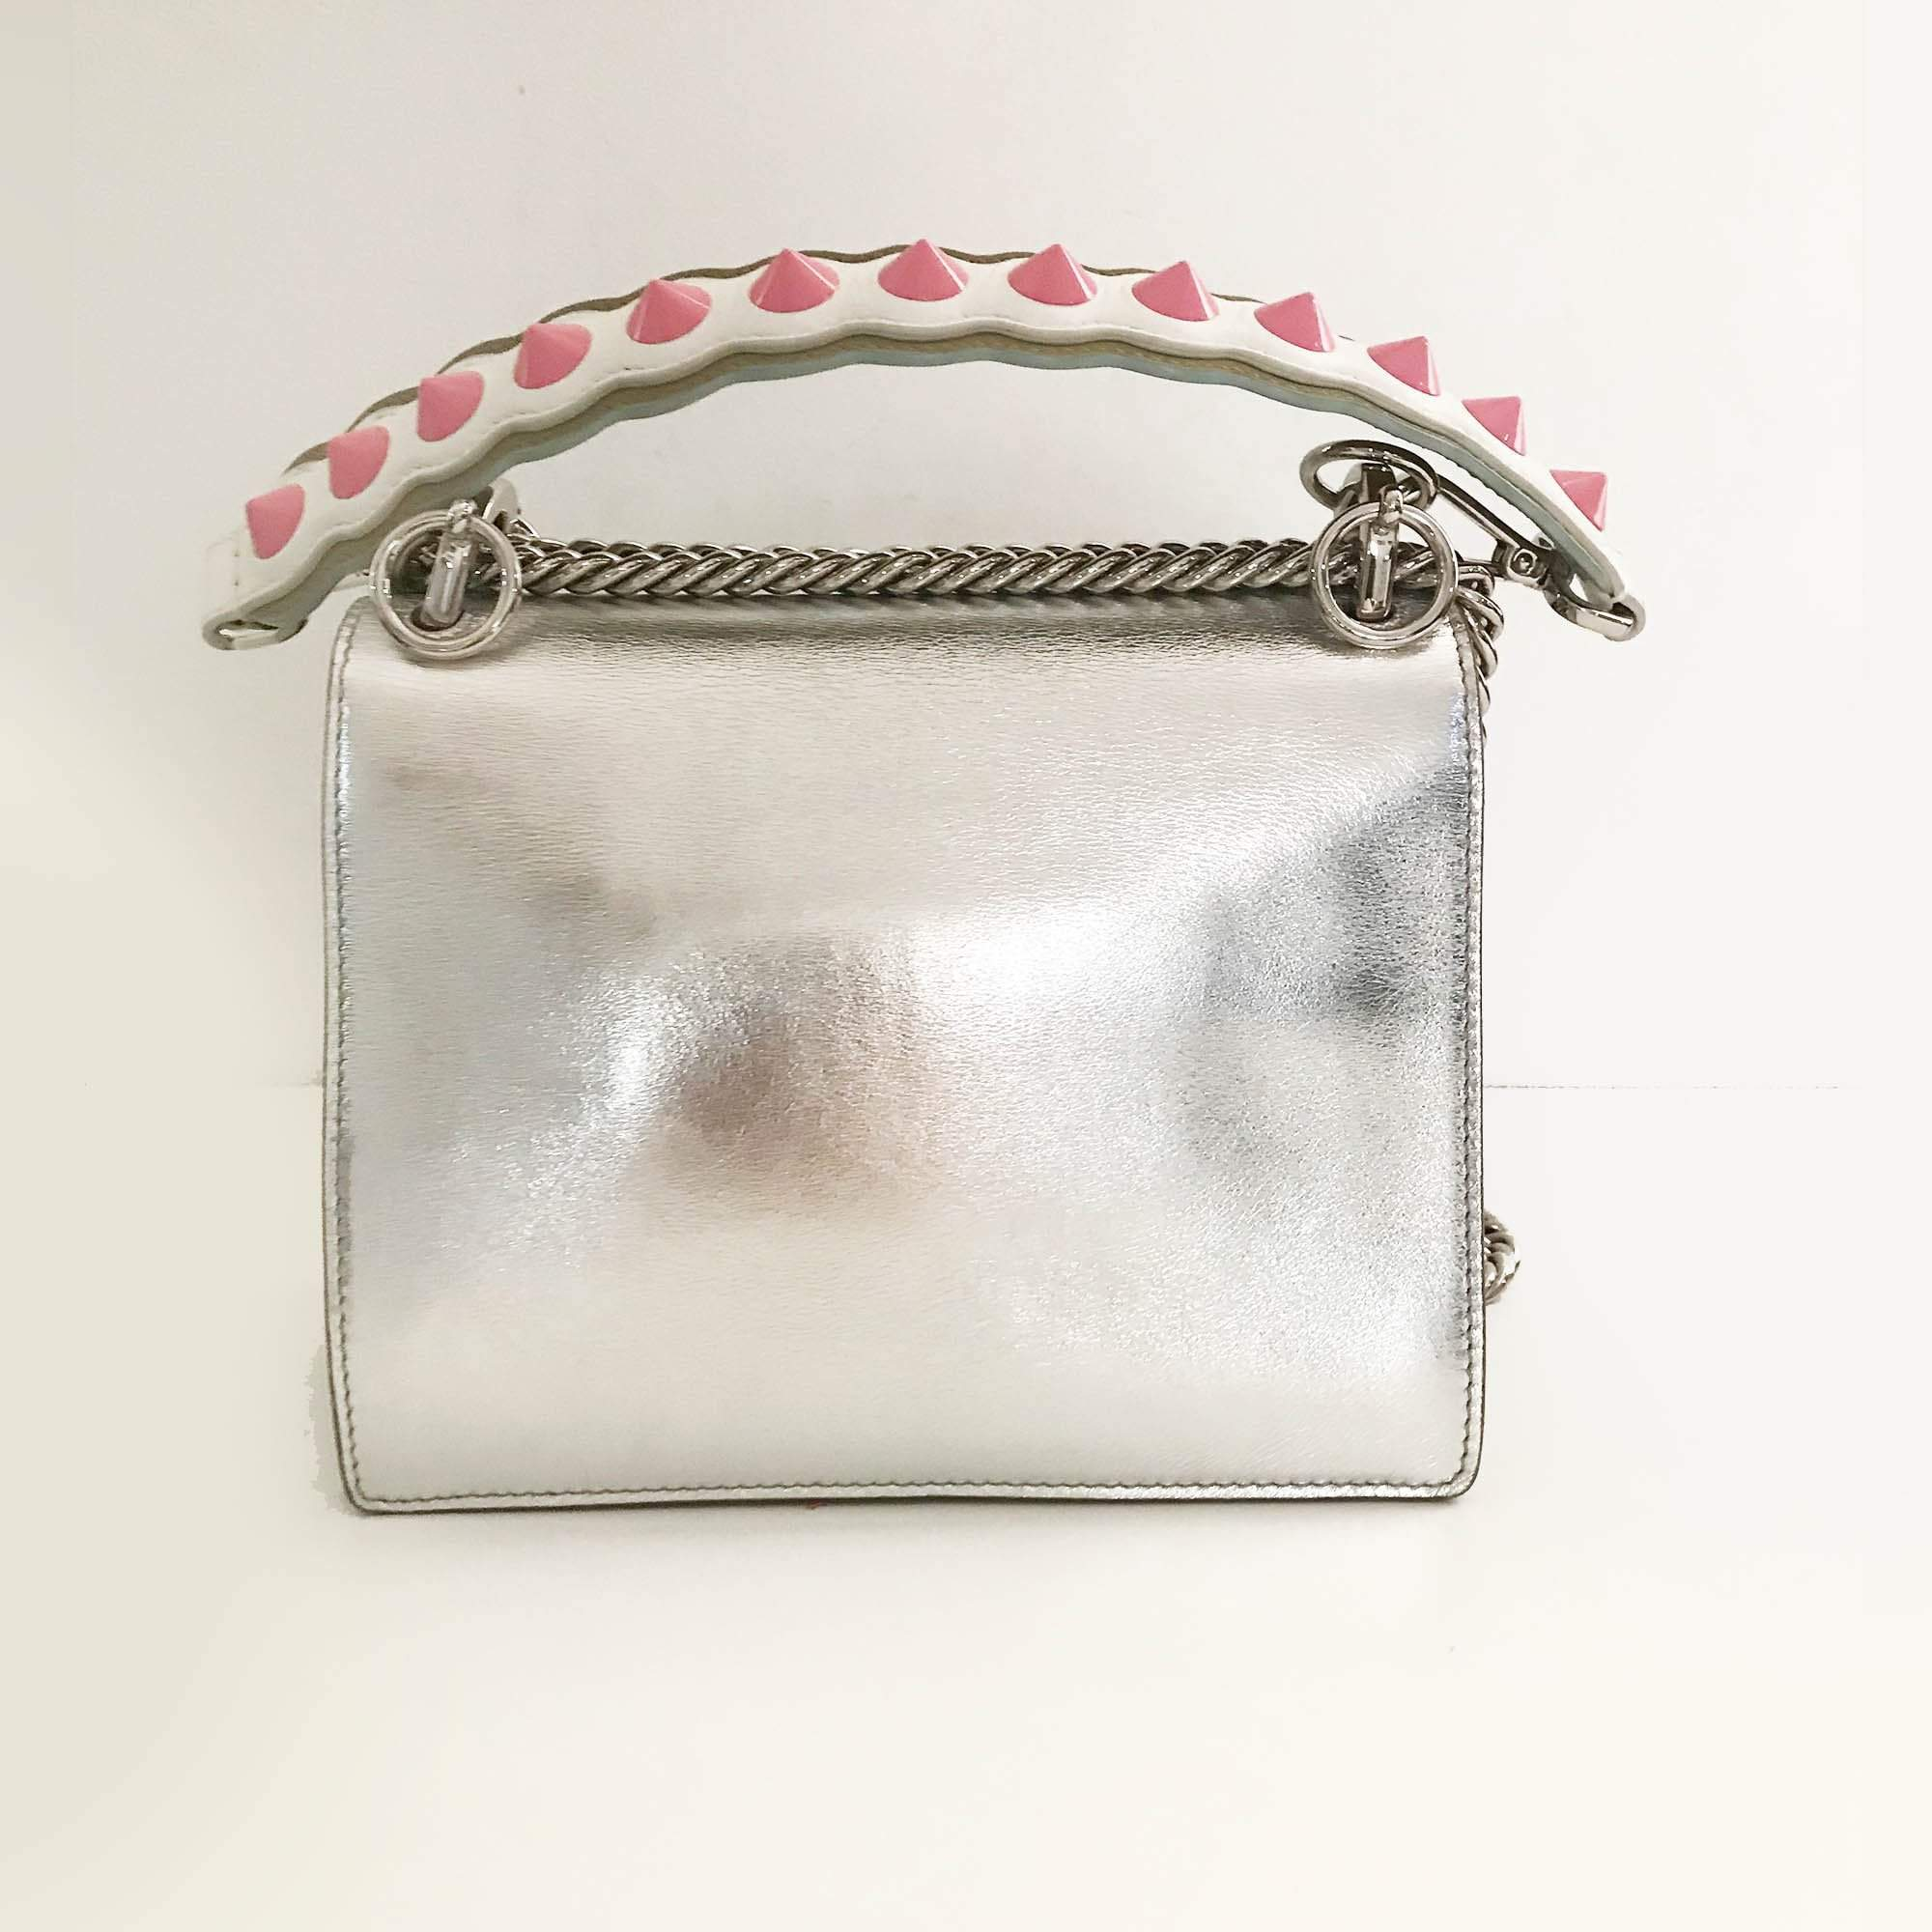 Fendi KAN I Small Silver leather mini-bag